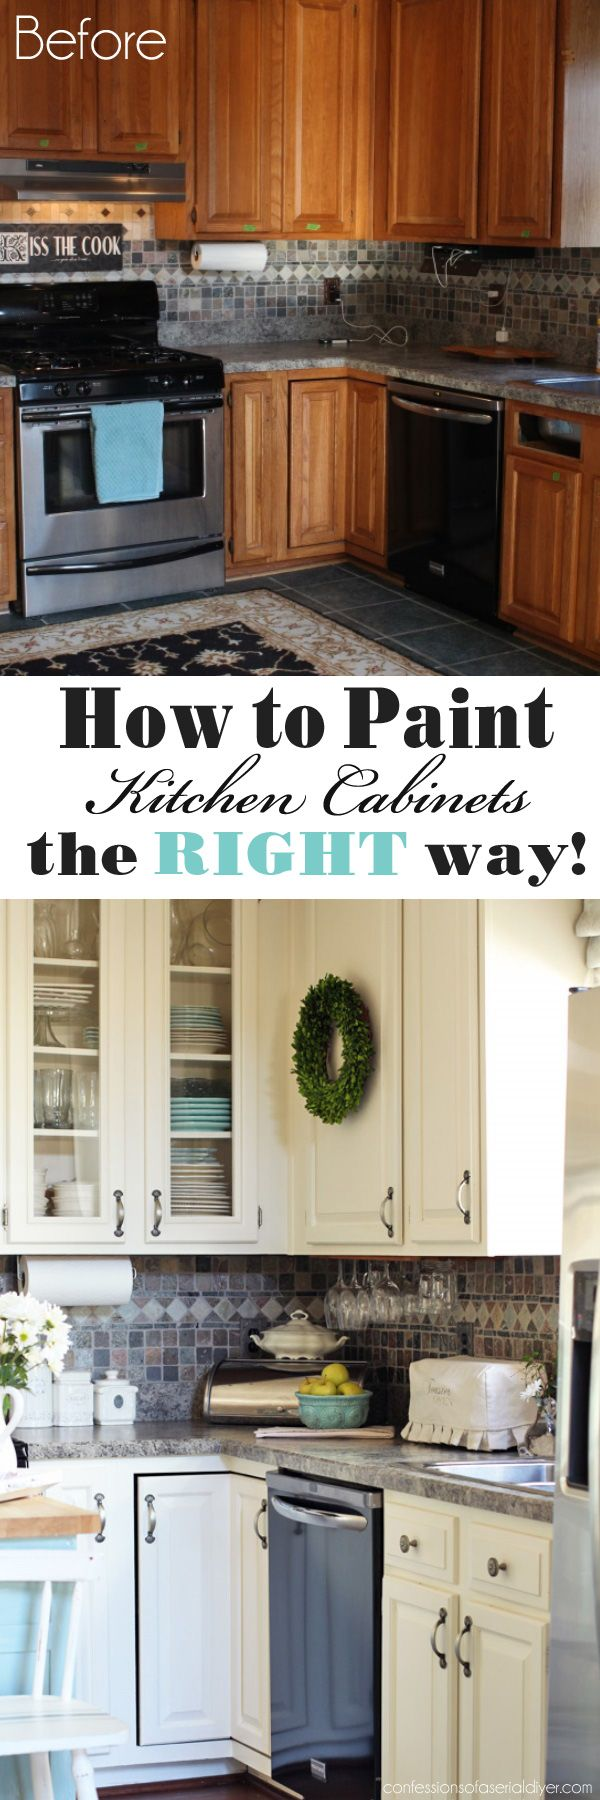 Superior How To Paint Kitchen Cabinets The RIGHT Way From Confessions Of A Serial  Do It